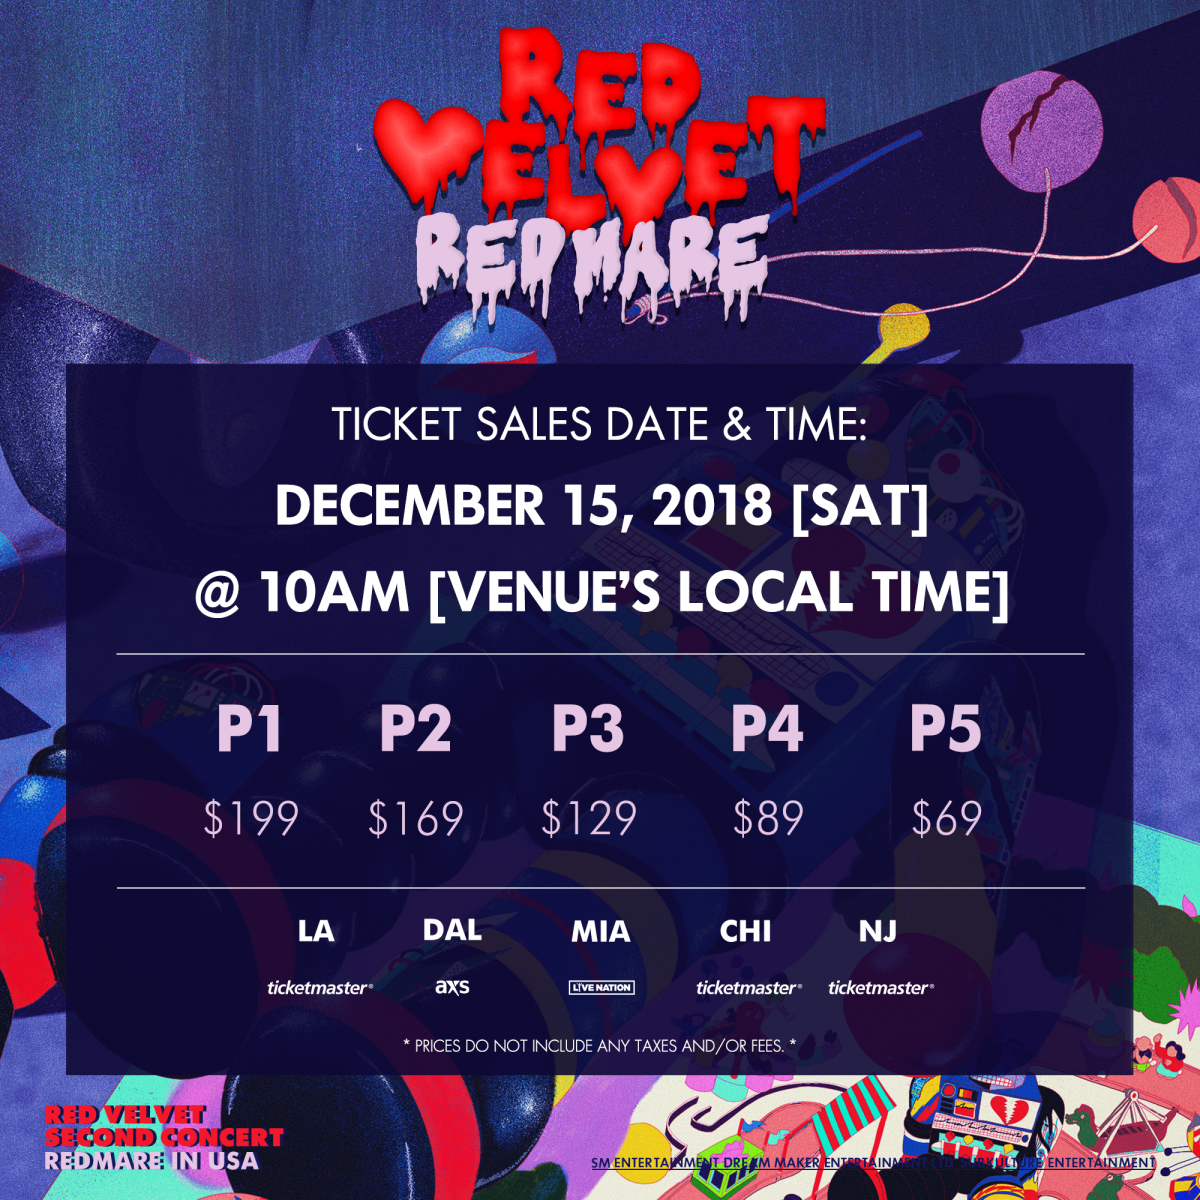 Red Velvet 'REDMARE' U.S. Tour